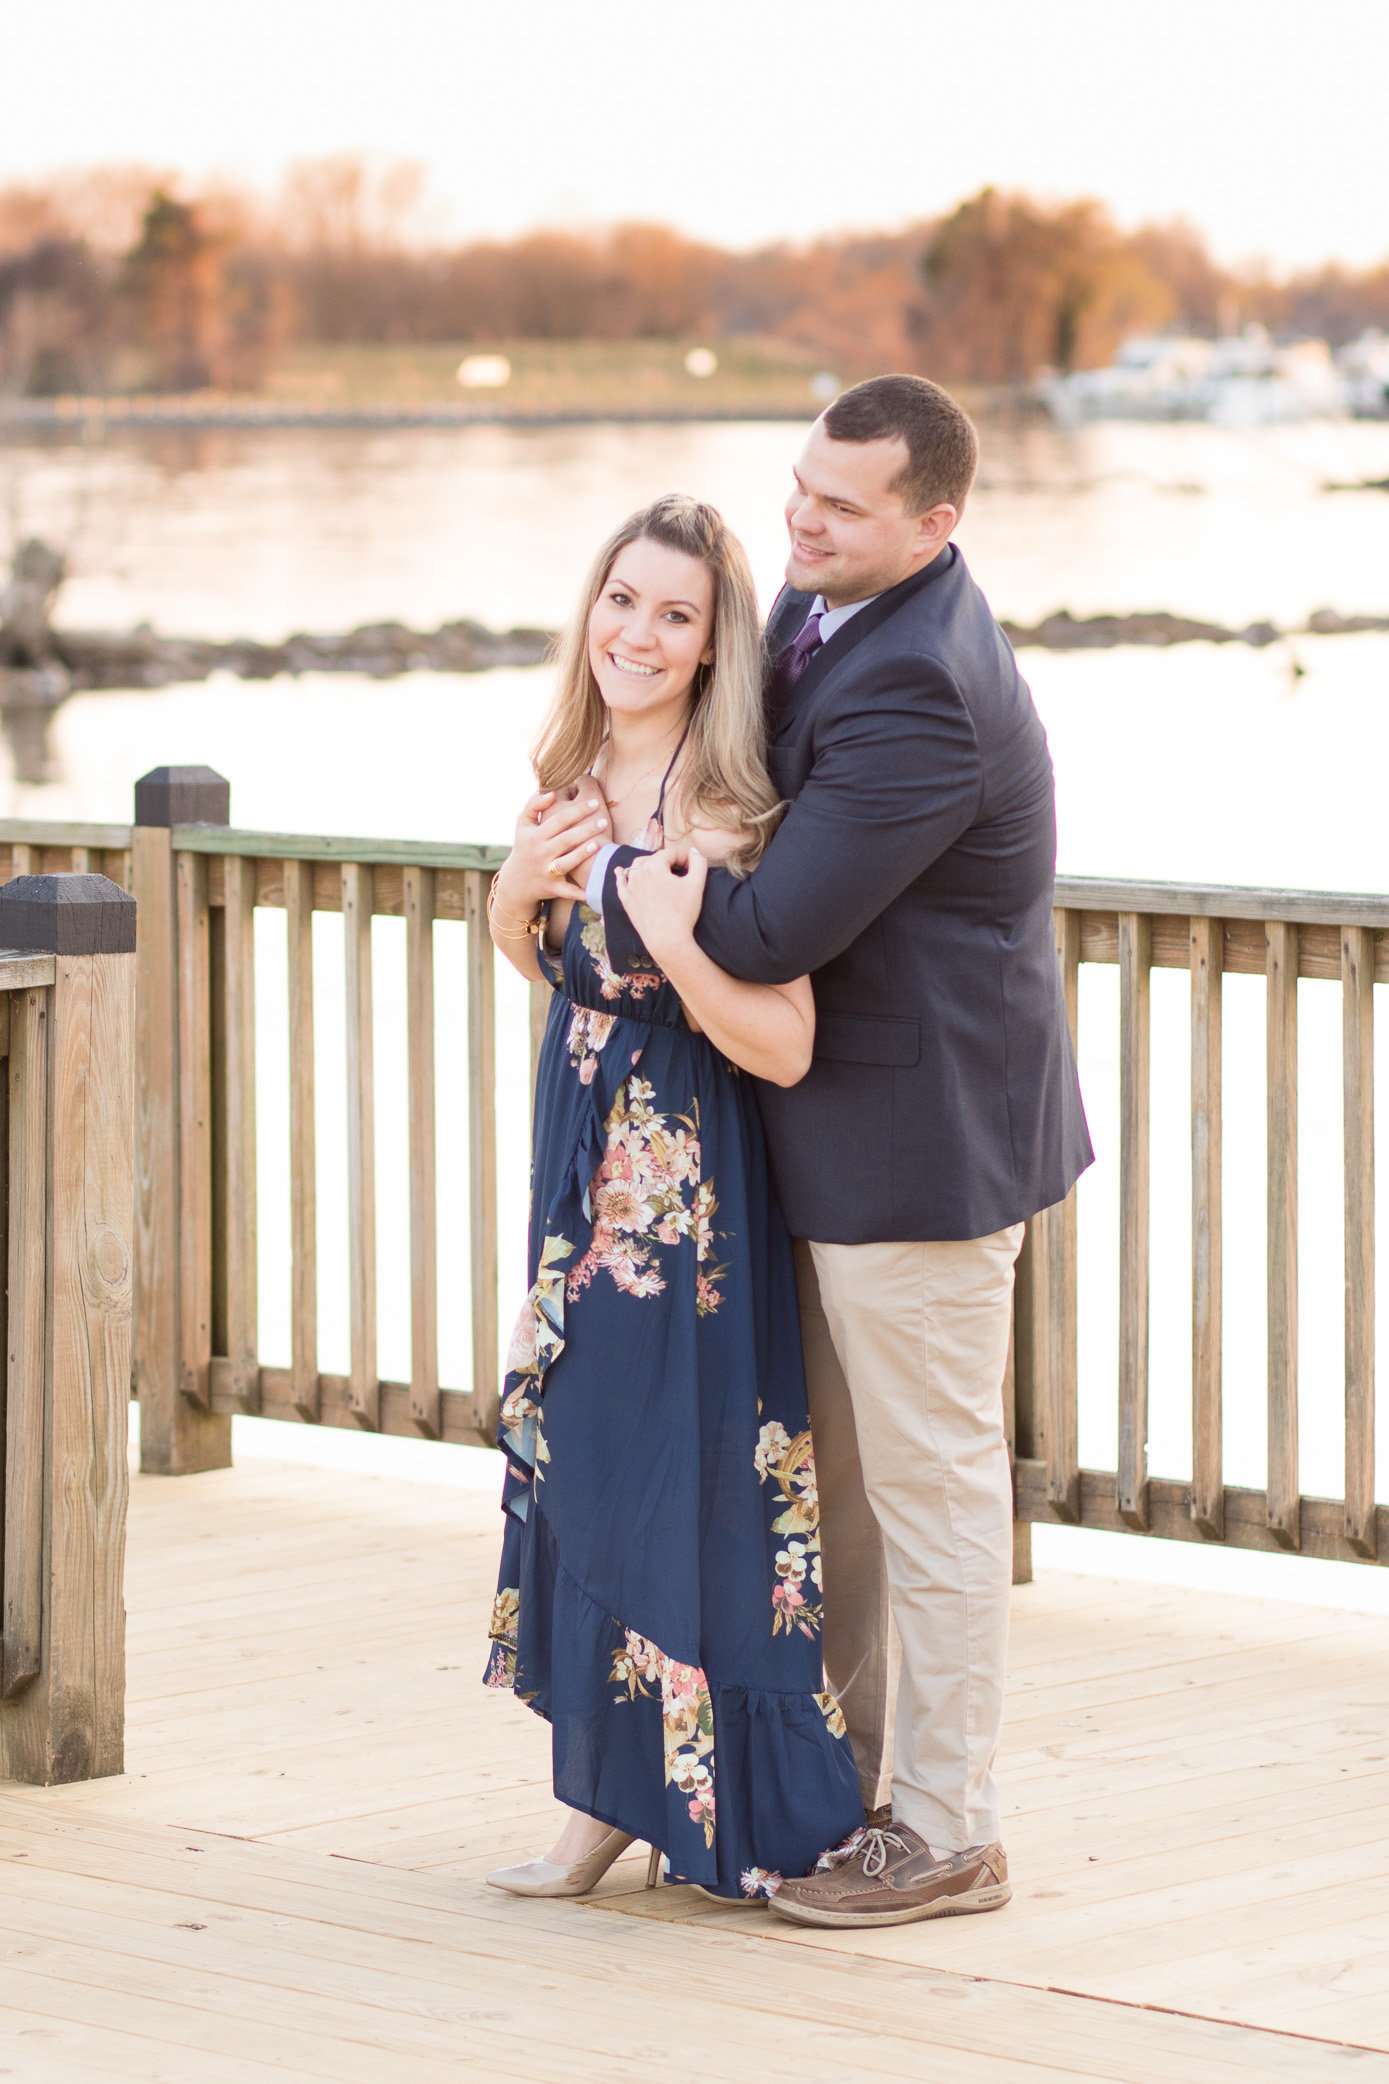 Micki and John during their engagement session at Havre de Grace